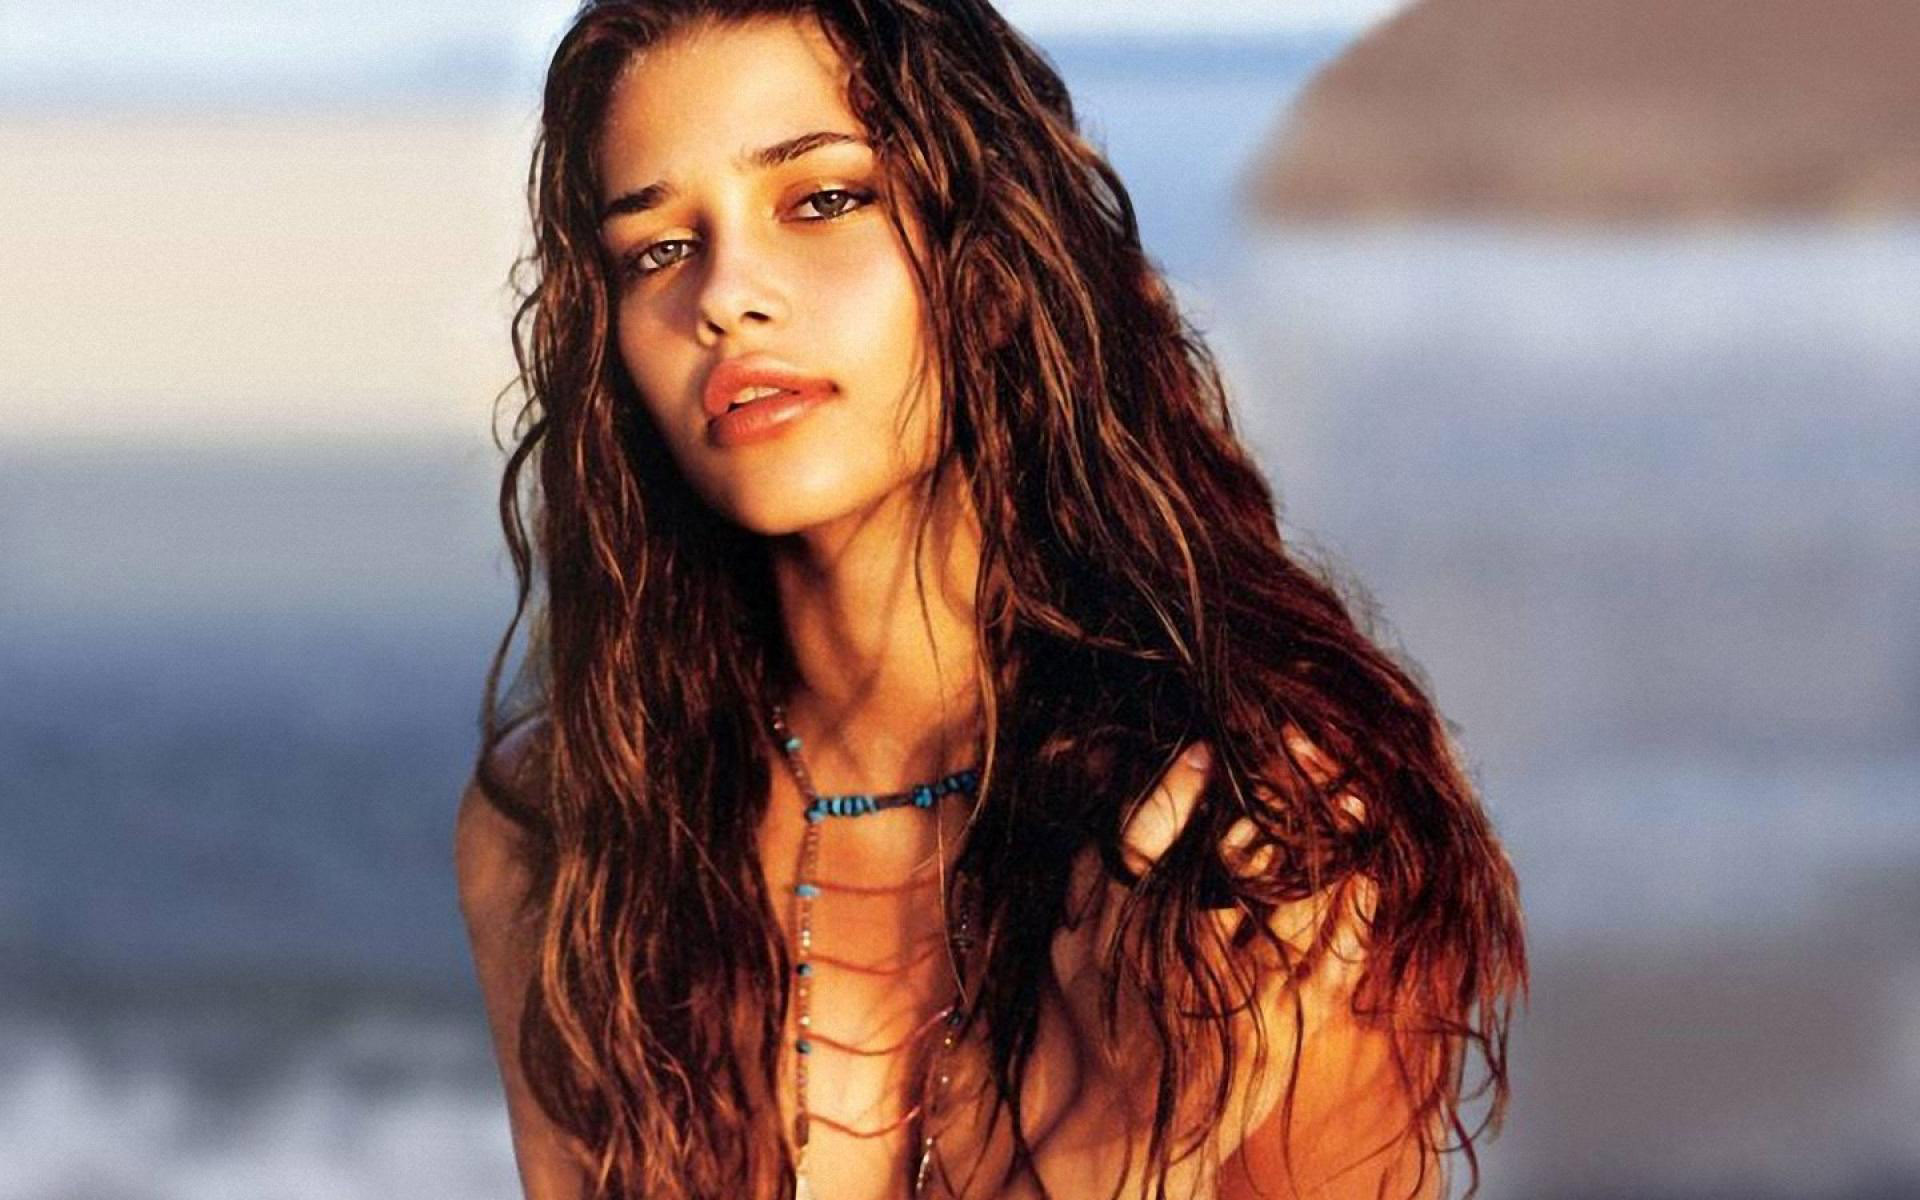 Young Ana Beatriz Barros wet curly hair wallpaper